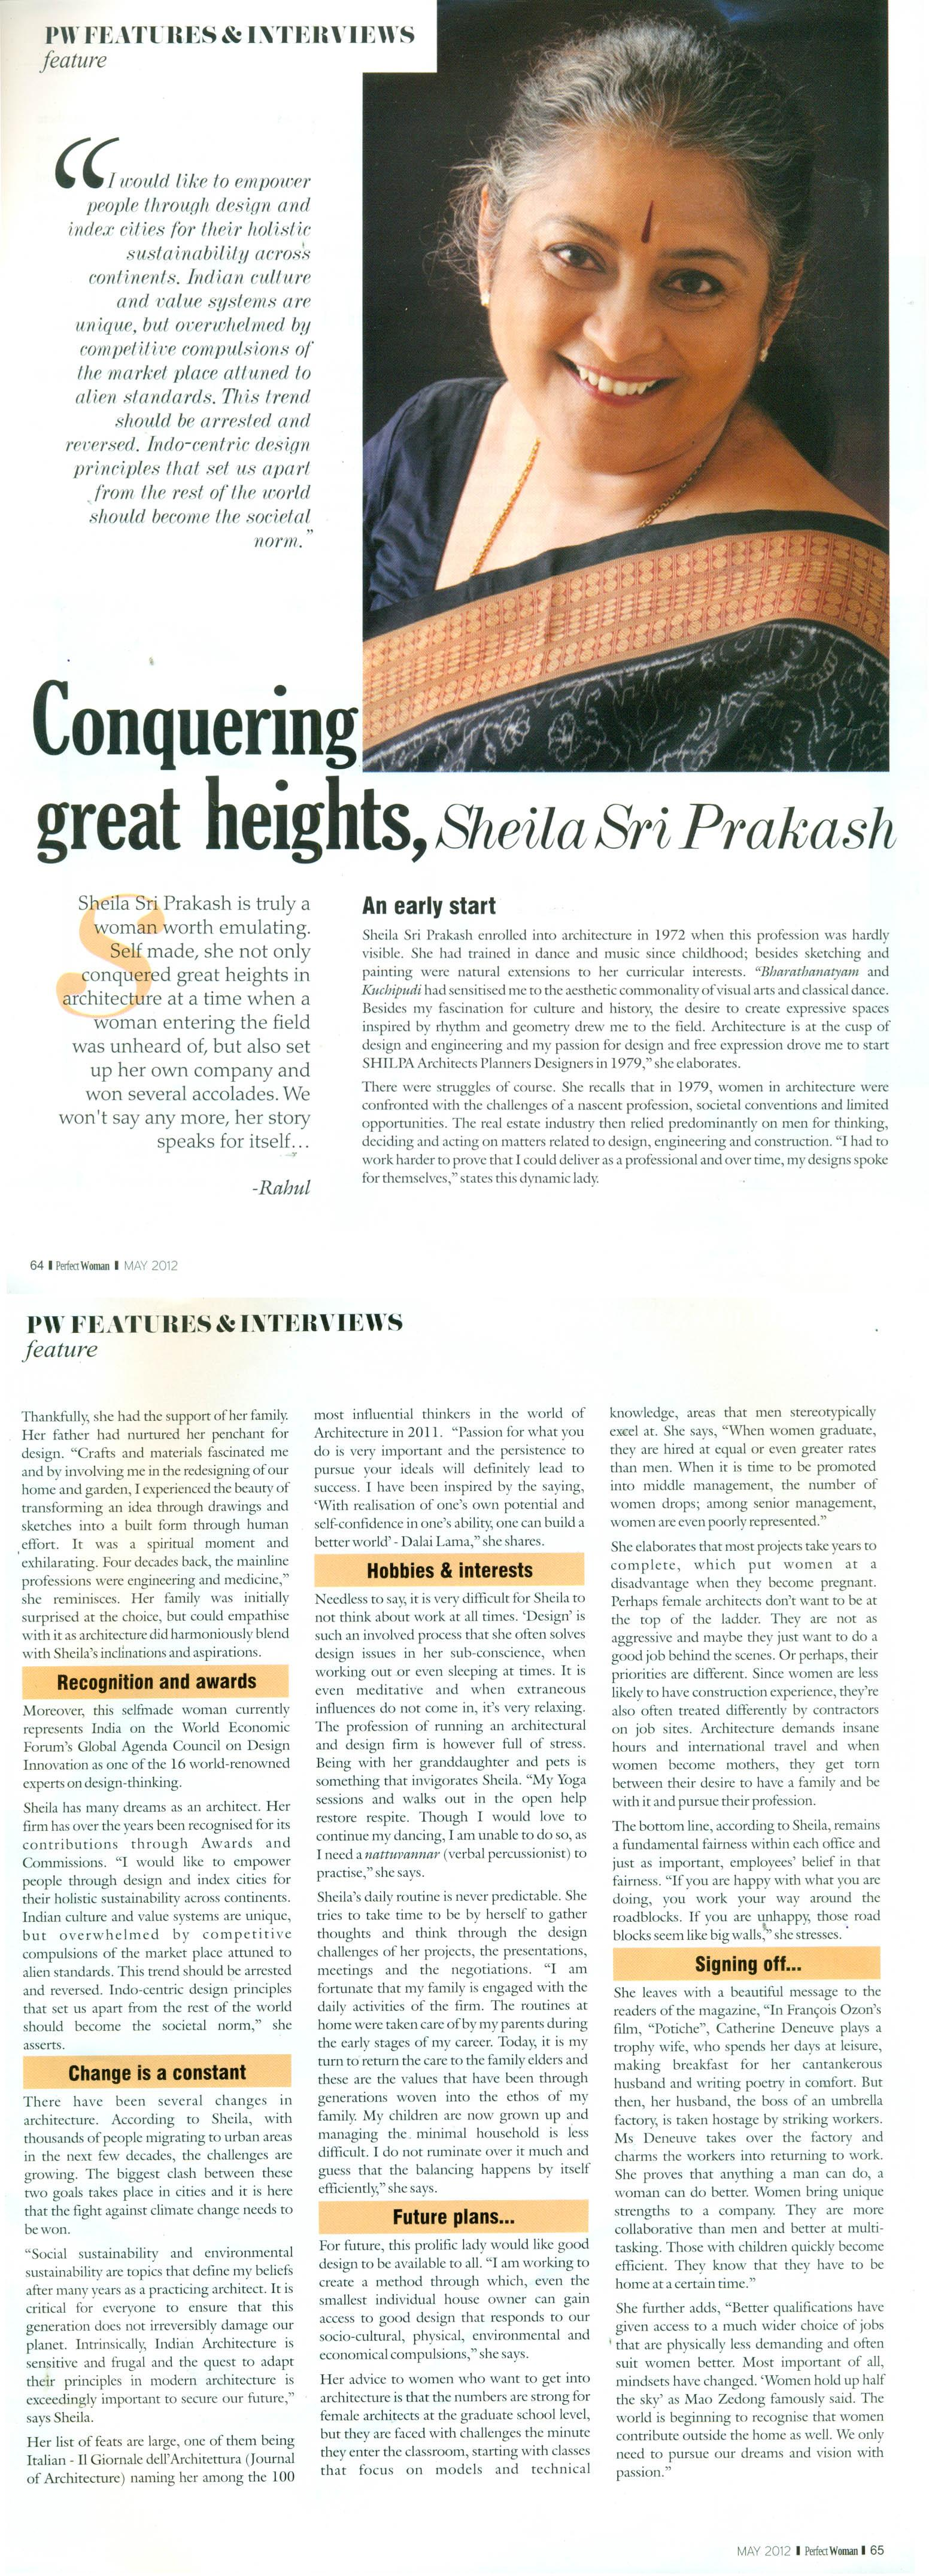 Perfect Woman, May 2012: Conquering great heights, Sheila Sri Prakash.